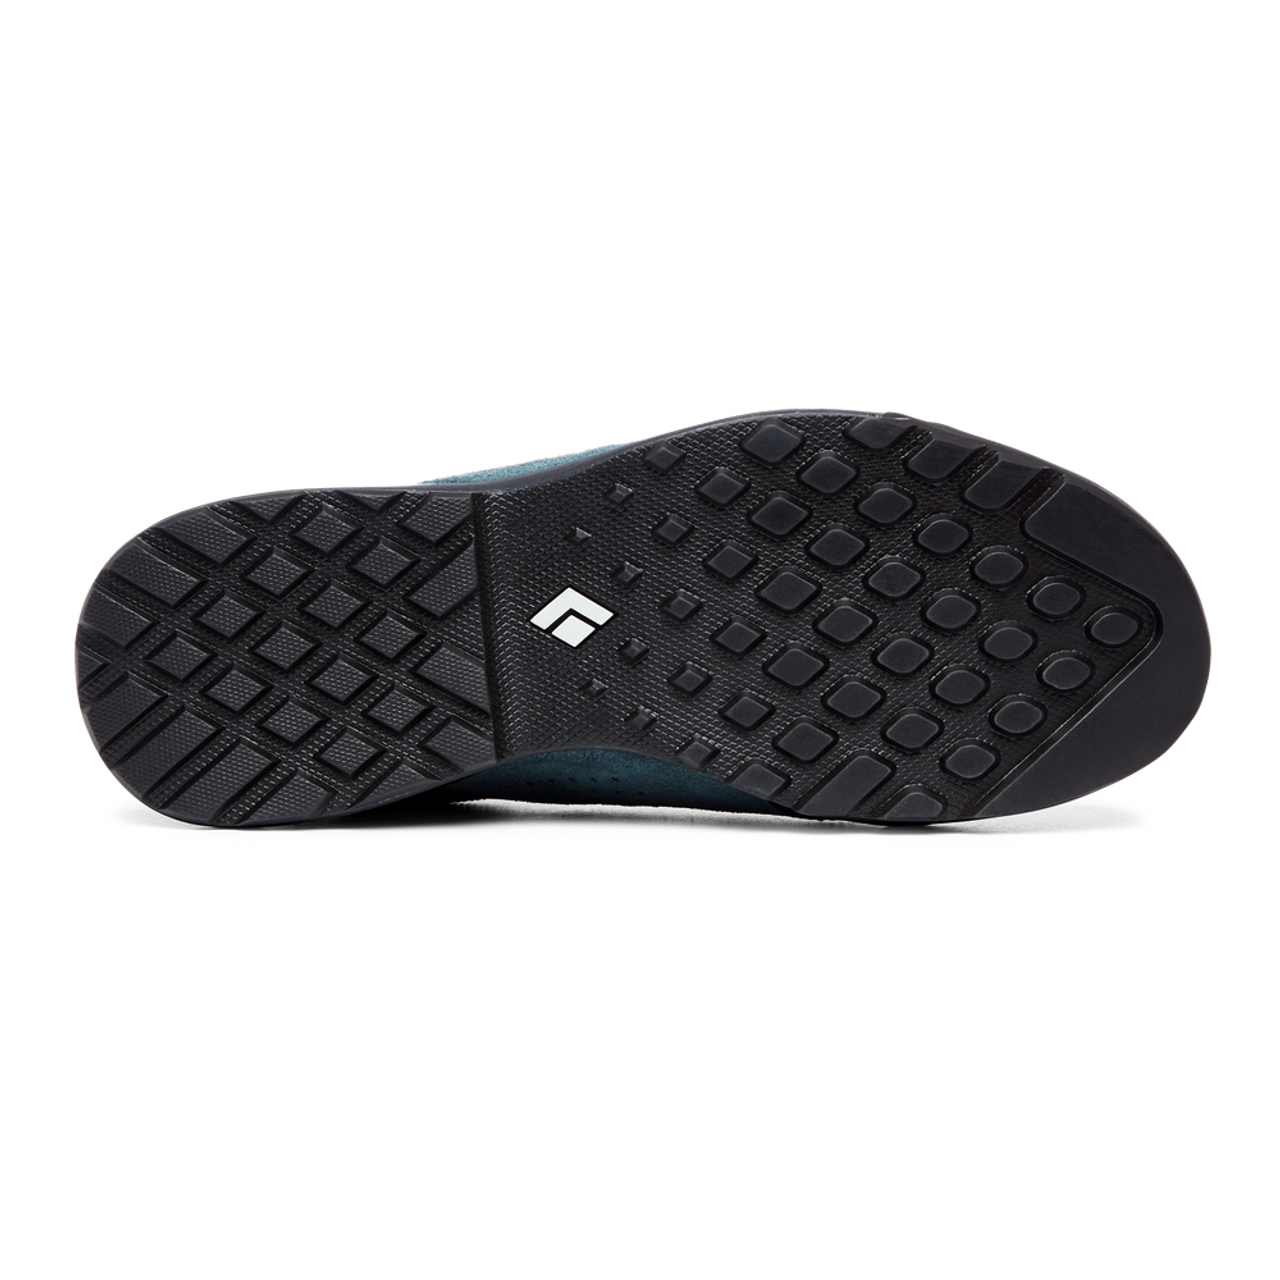 Black Diamond Mission XP Leather Low - Women's Approach Shoe - Bottom - Online at Mountain Mail Order South Africa